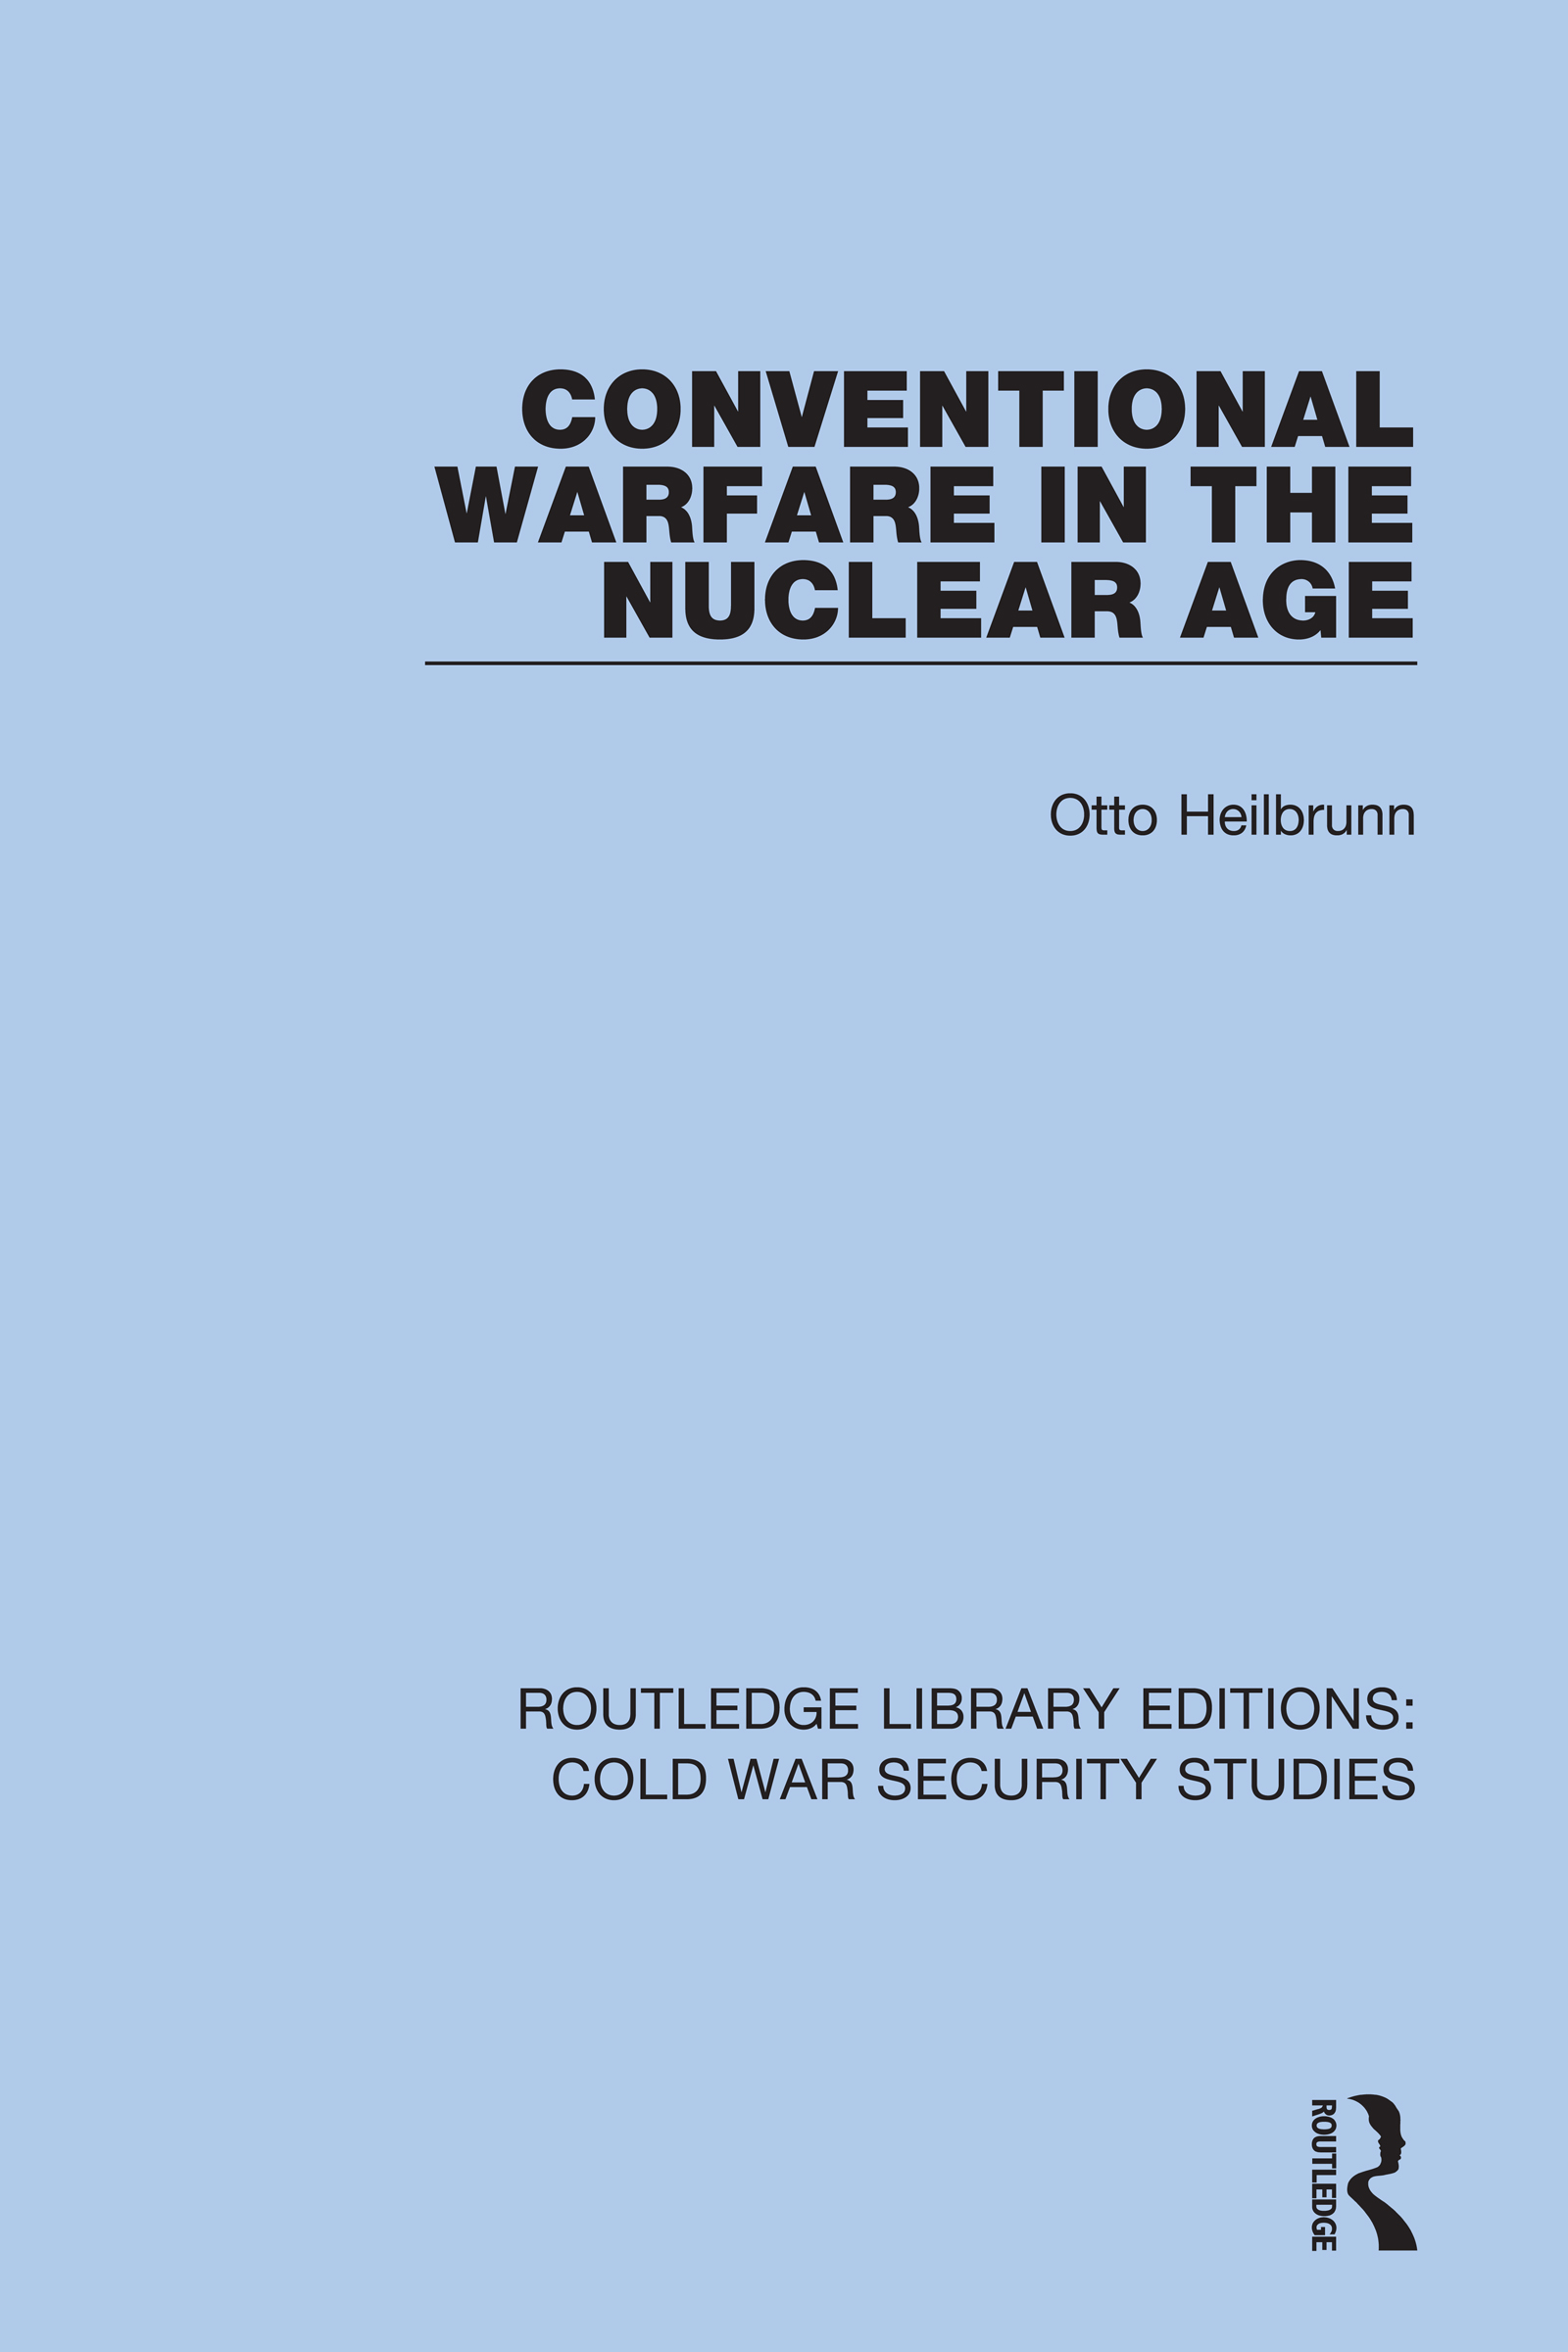 Conventional Warfare in the Nuclear Age